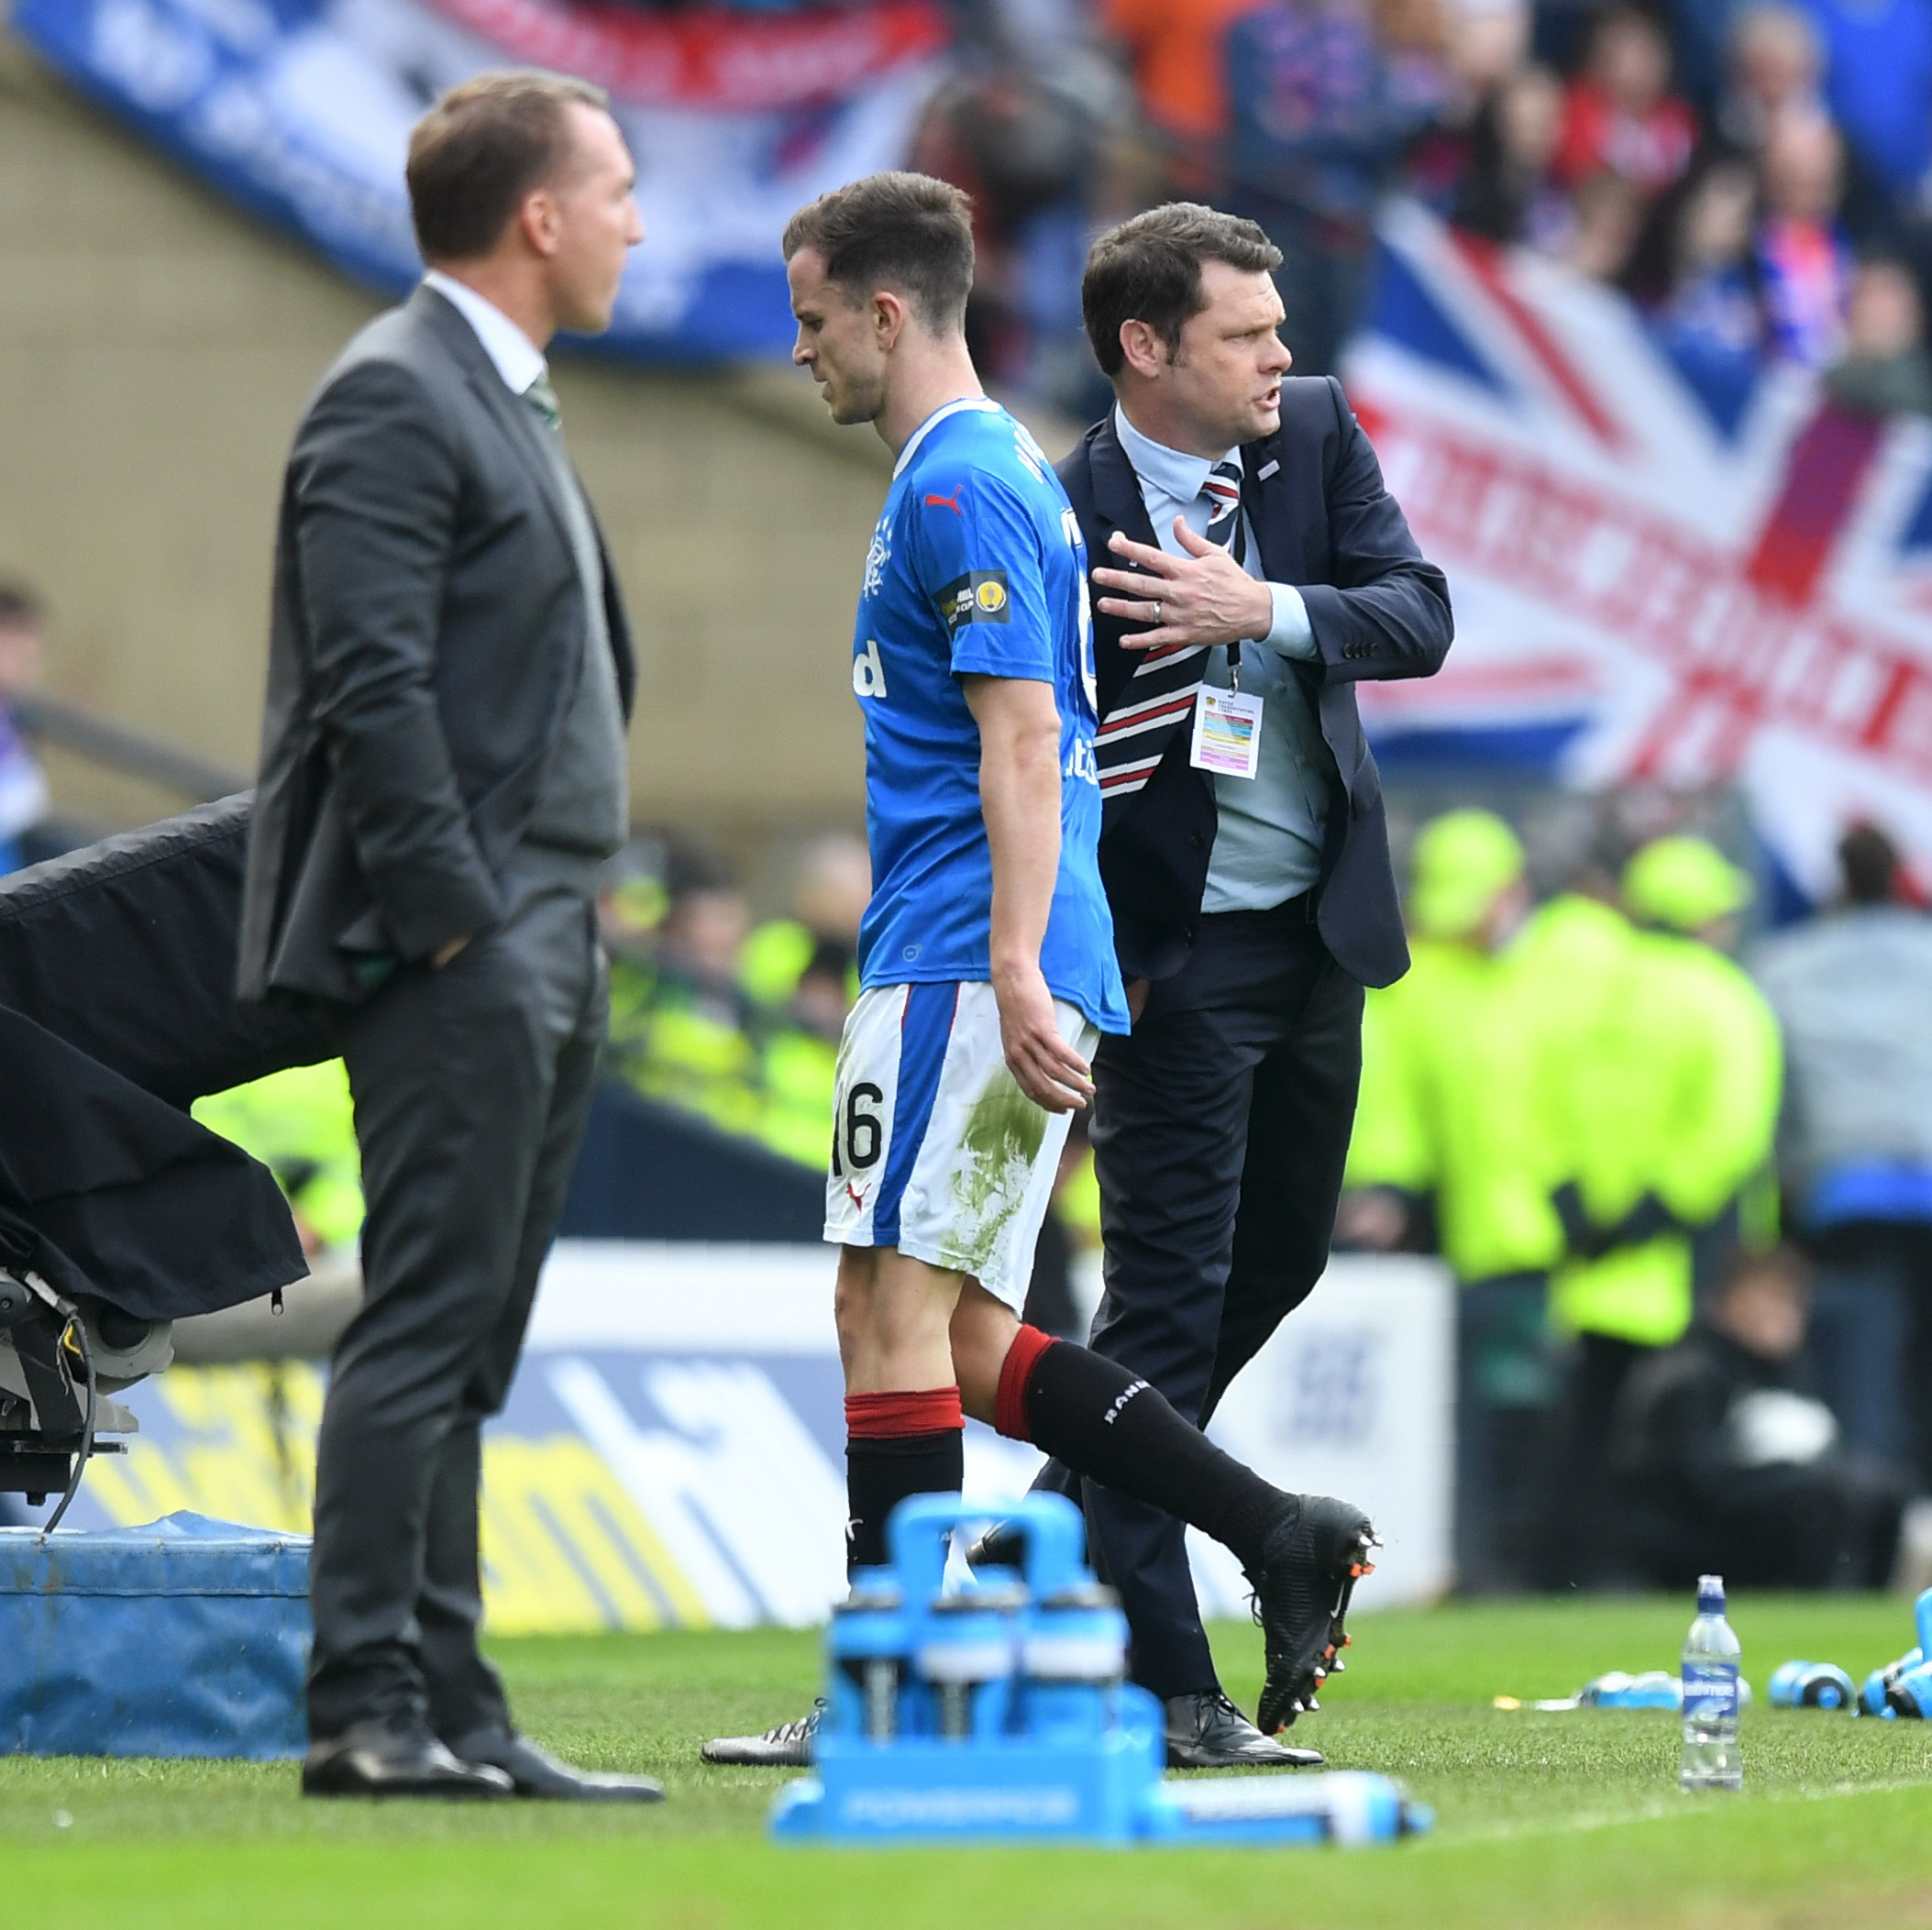 Rangers' Andy Halliday is frustrated as he is subbed in the first half